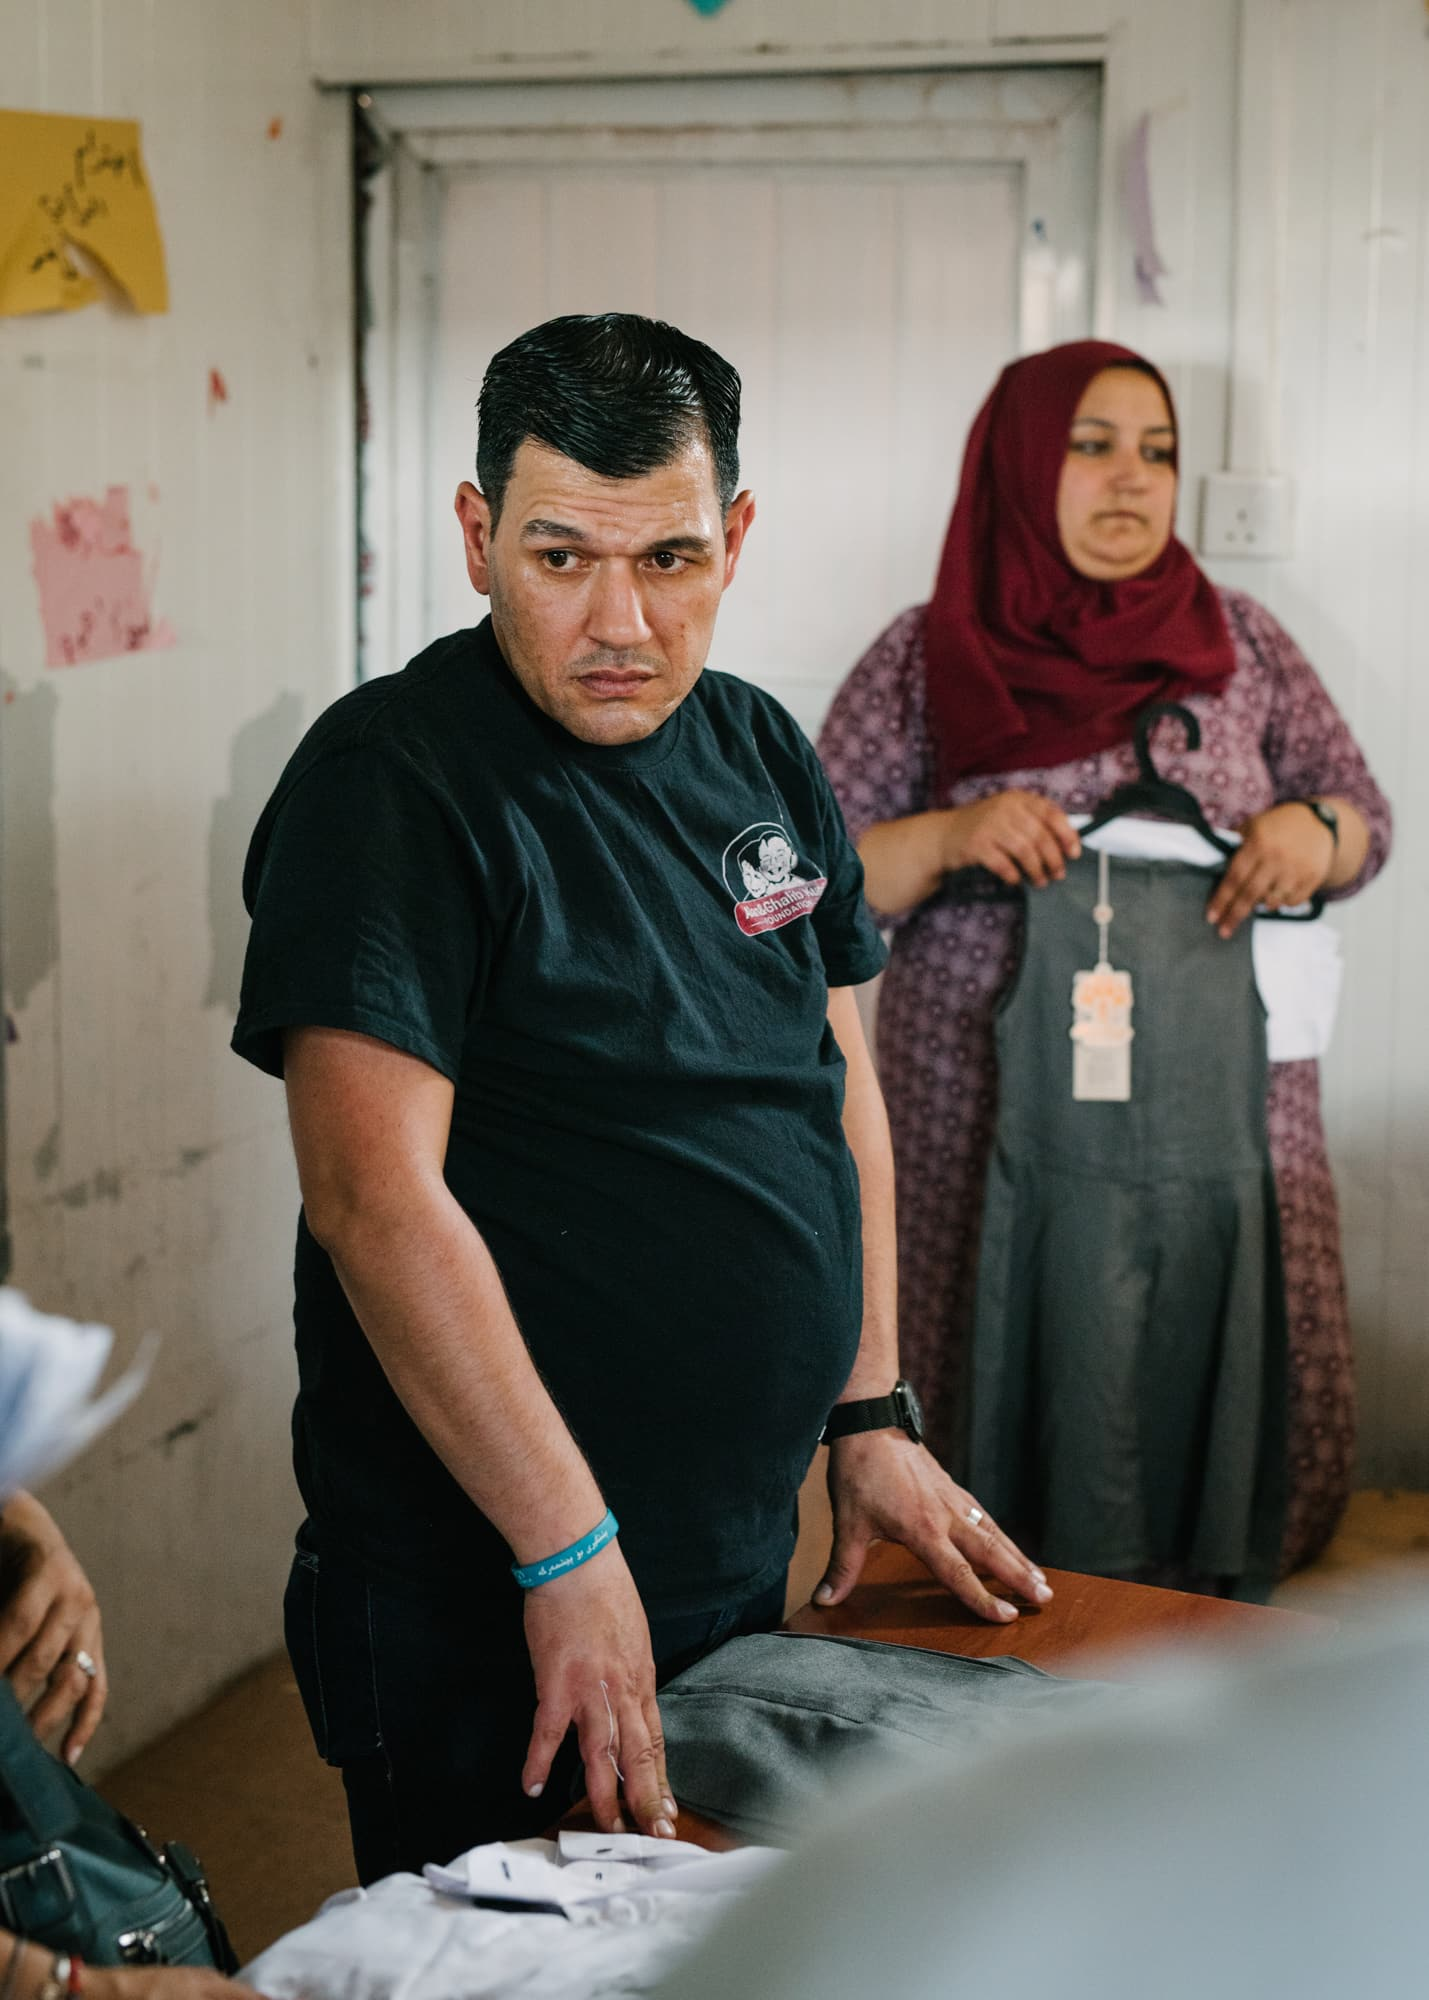 Abdullah Kurdi during a break while distributing school uniforms which he bought with the money from the Alan and Ghalib Kurdi foundation at the school, at Gawilan refugee camp, Iraq, Sept 2nd, 2019.